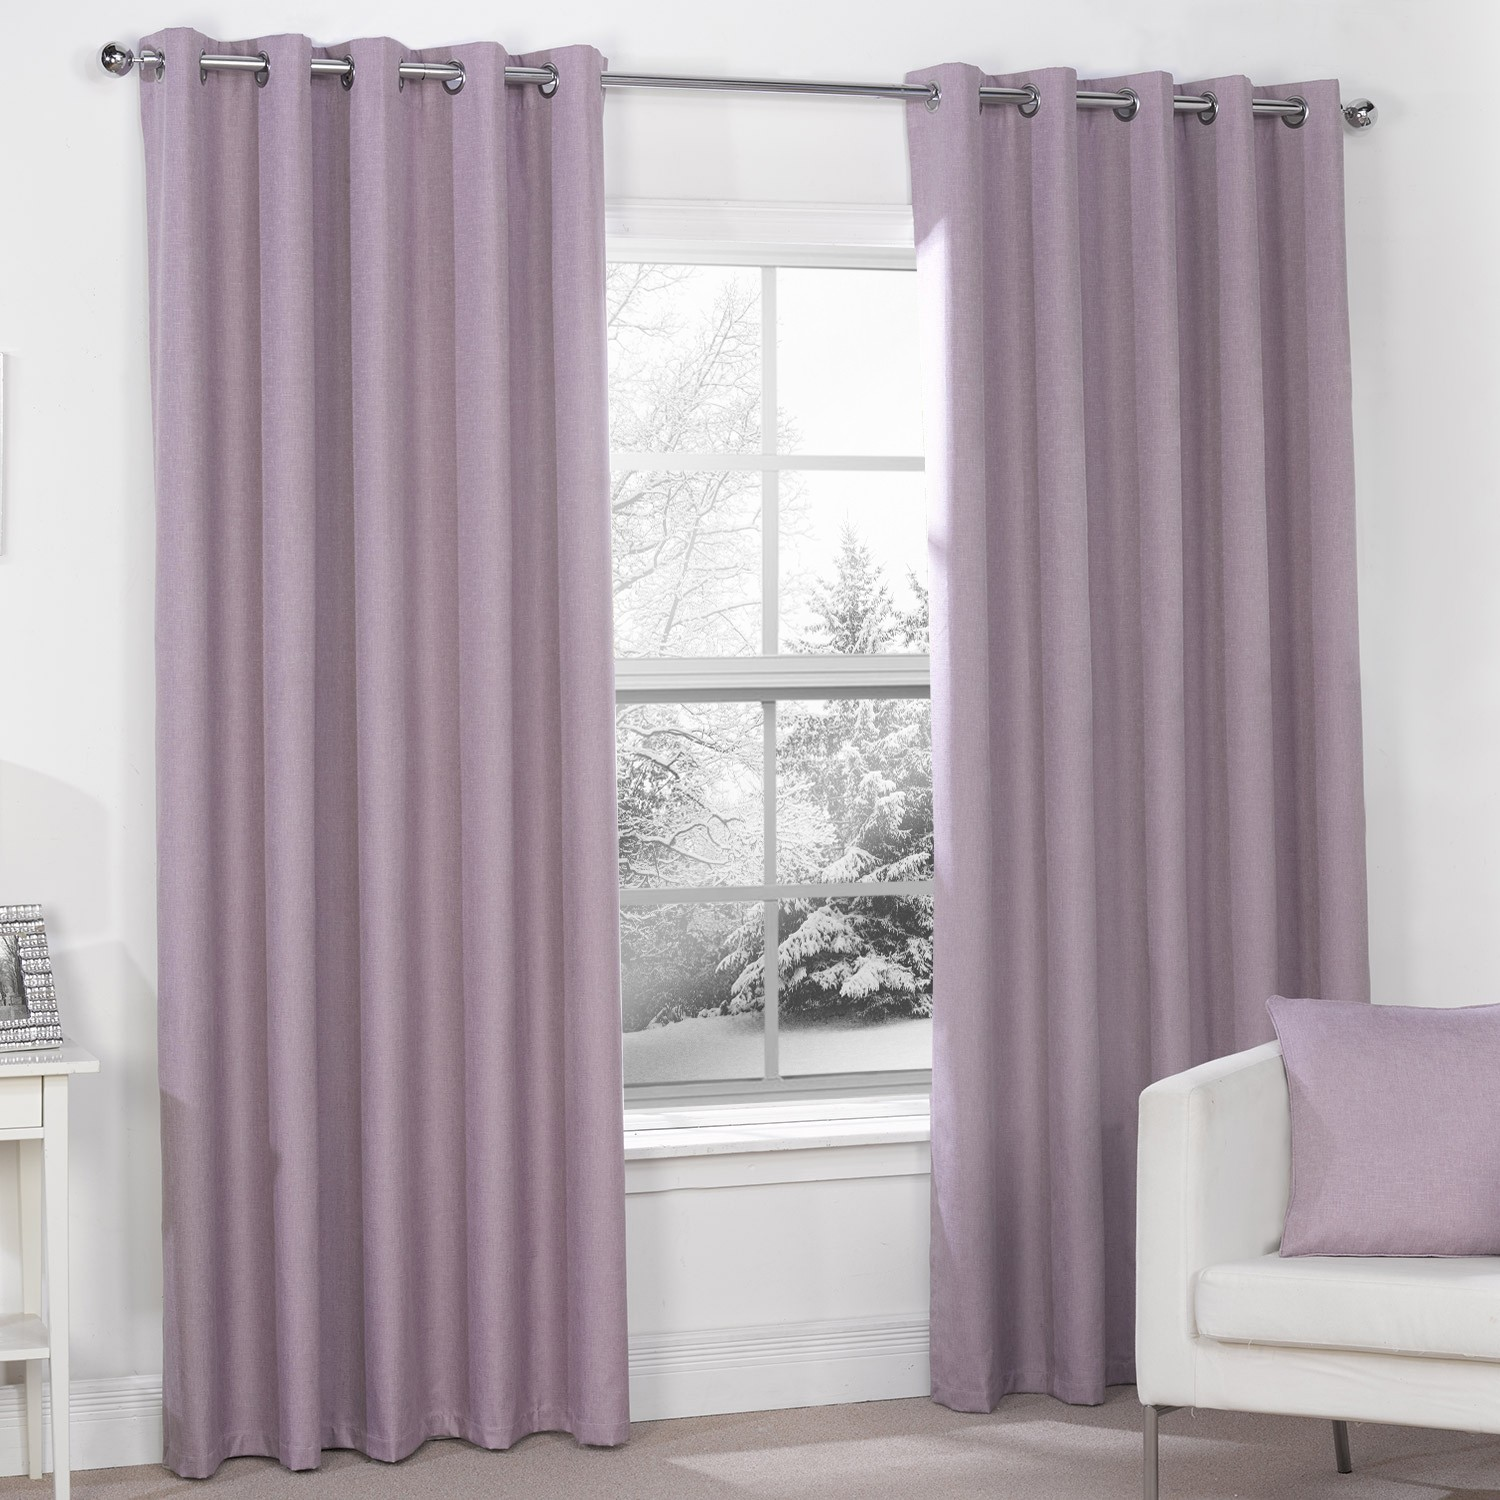 Cheap White Blackout Curtains | Where to Buy Blackout Curtains | Cheap Blackout Curtains